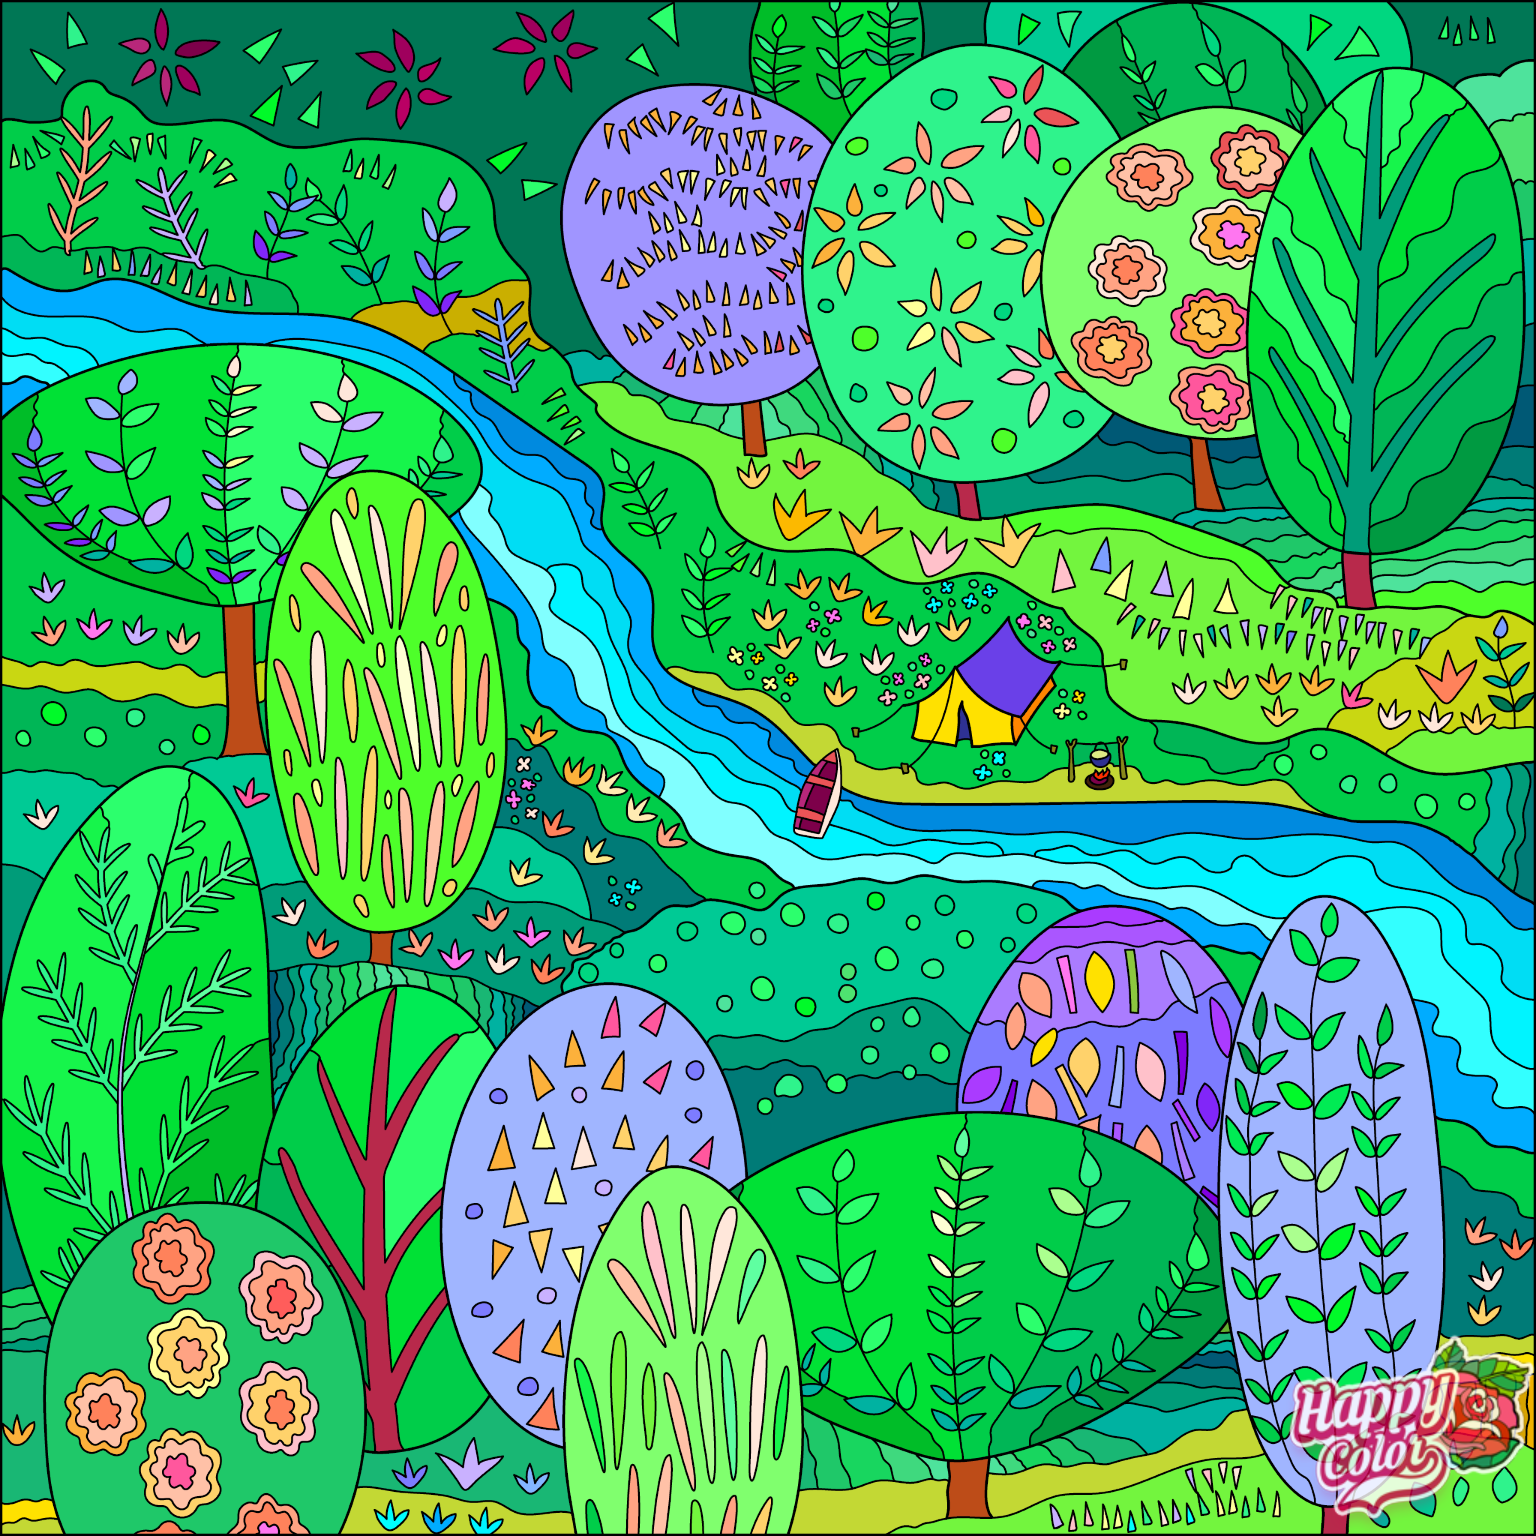 coloring book app image of a brightly colored forest with a river